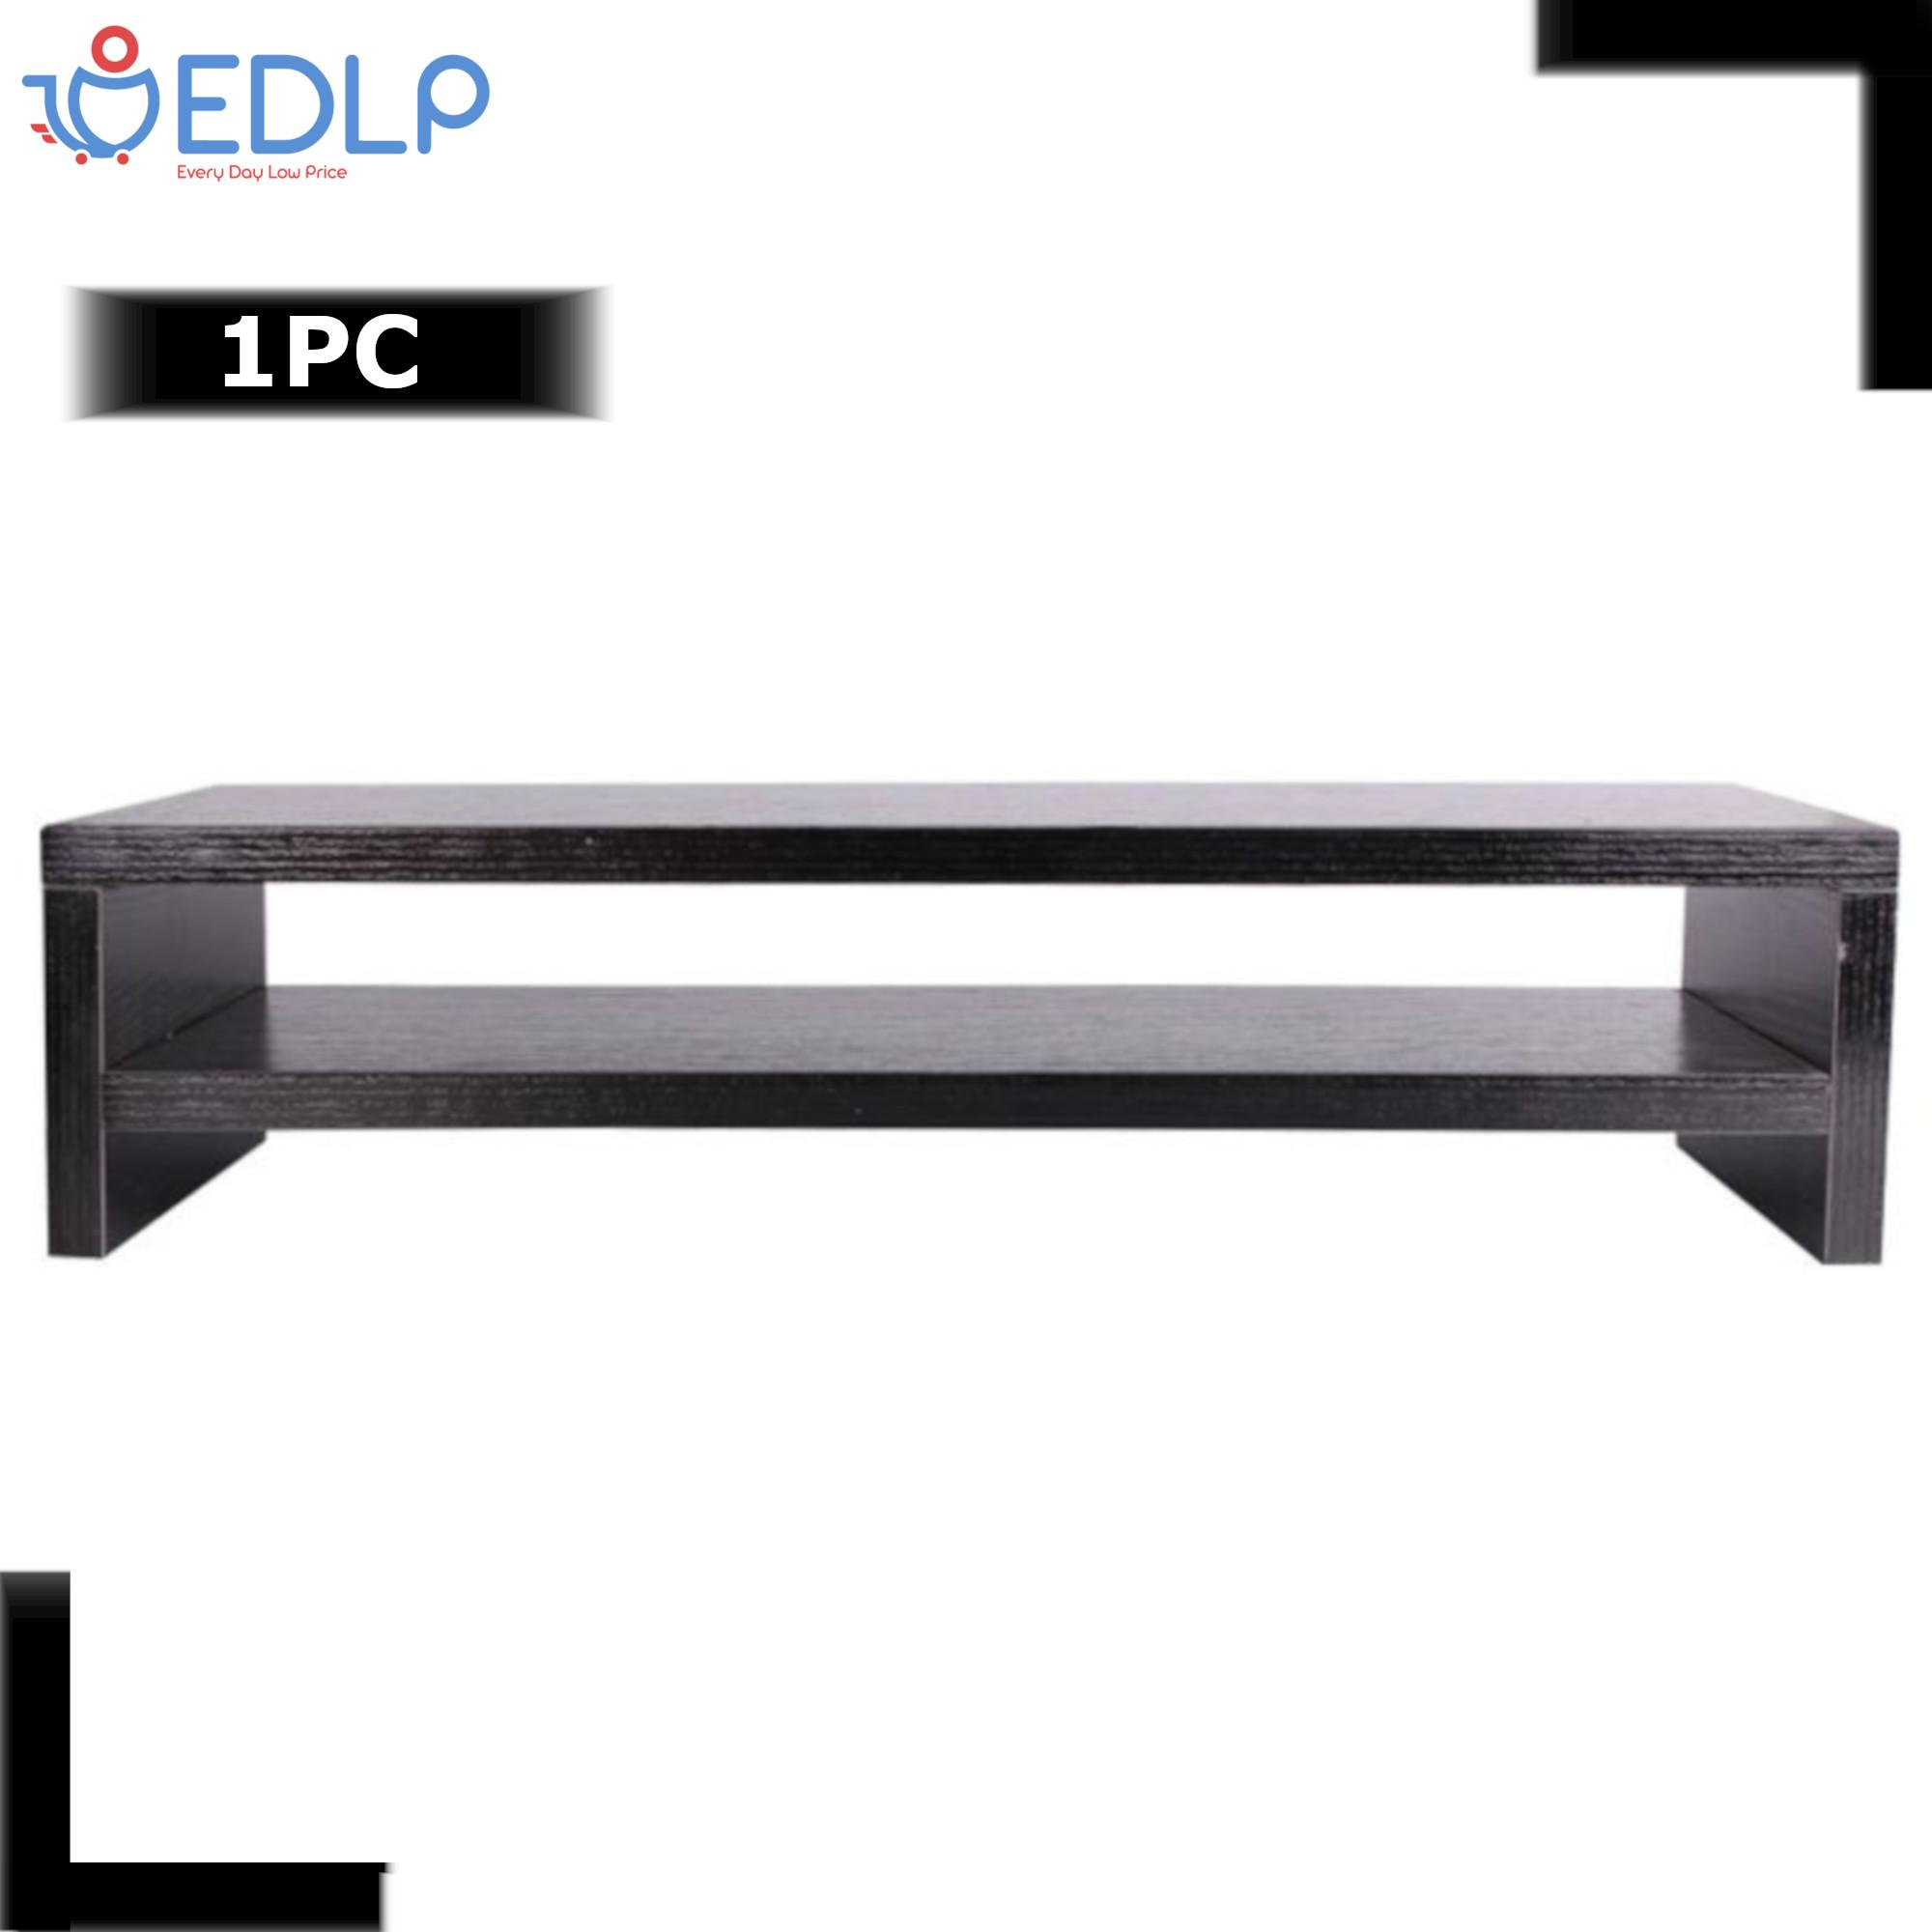 Ergonomic Monitor Stand by EDLP